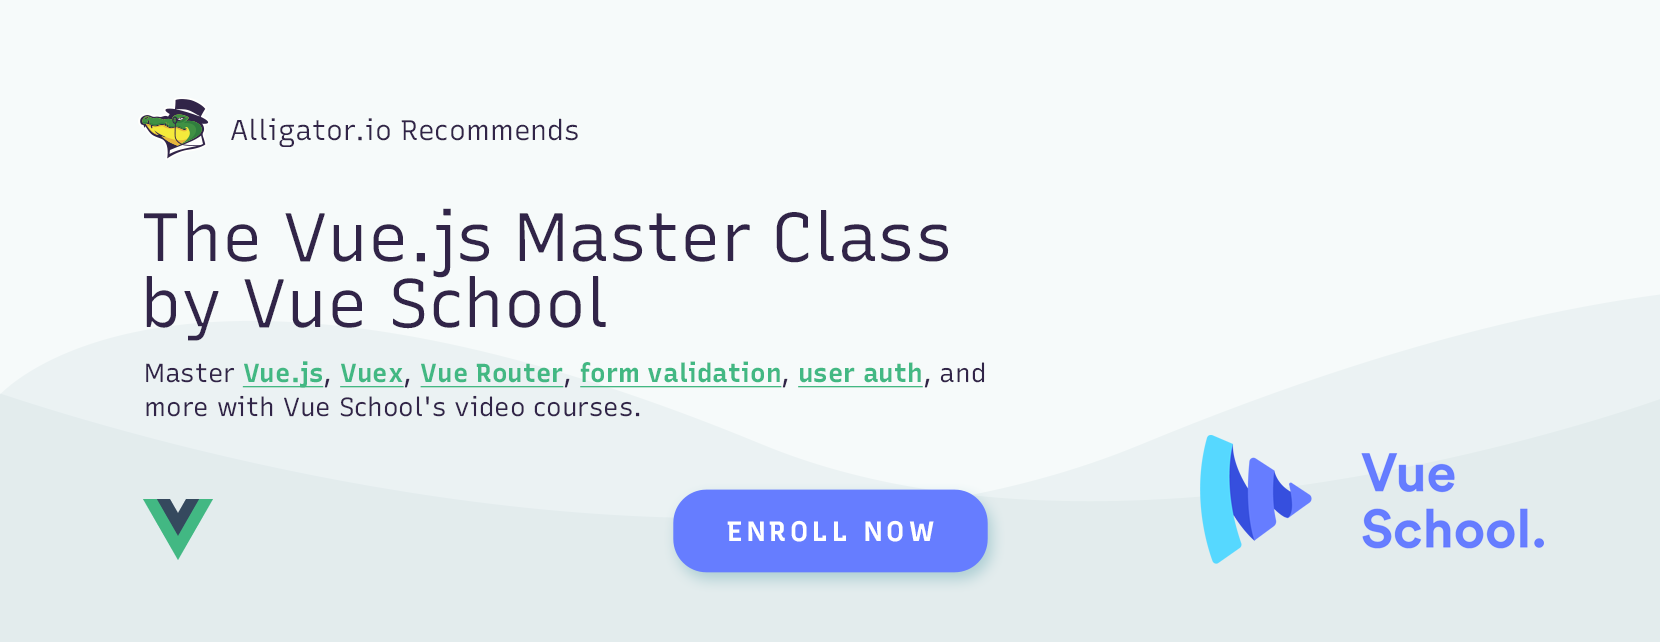 Recommended: Vue School's Vue Master class course